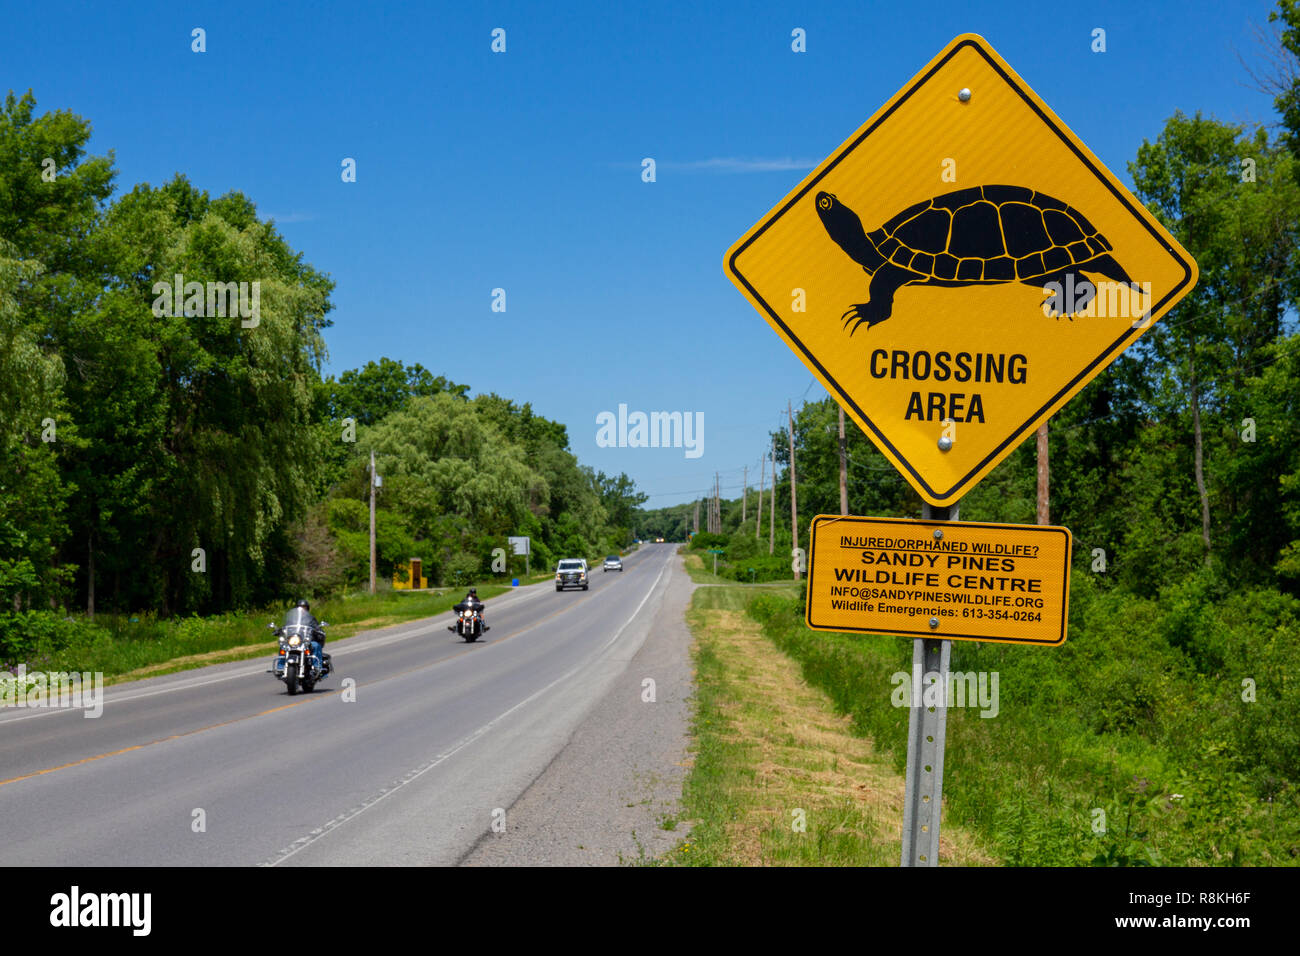 Canada, Province of Ontario, Prince Edward County, road sign for passing turtles - Stock Image